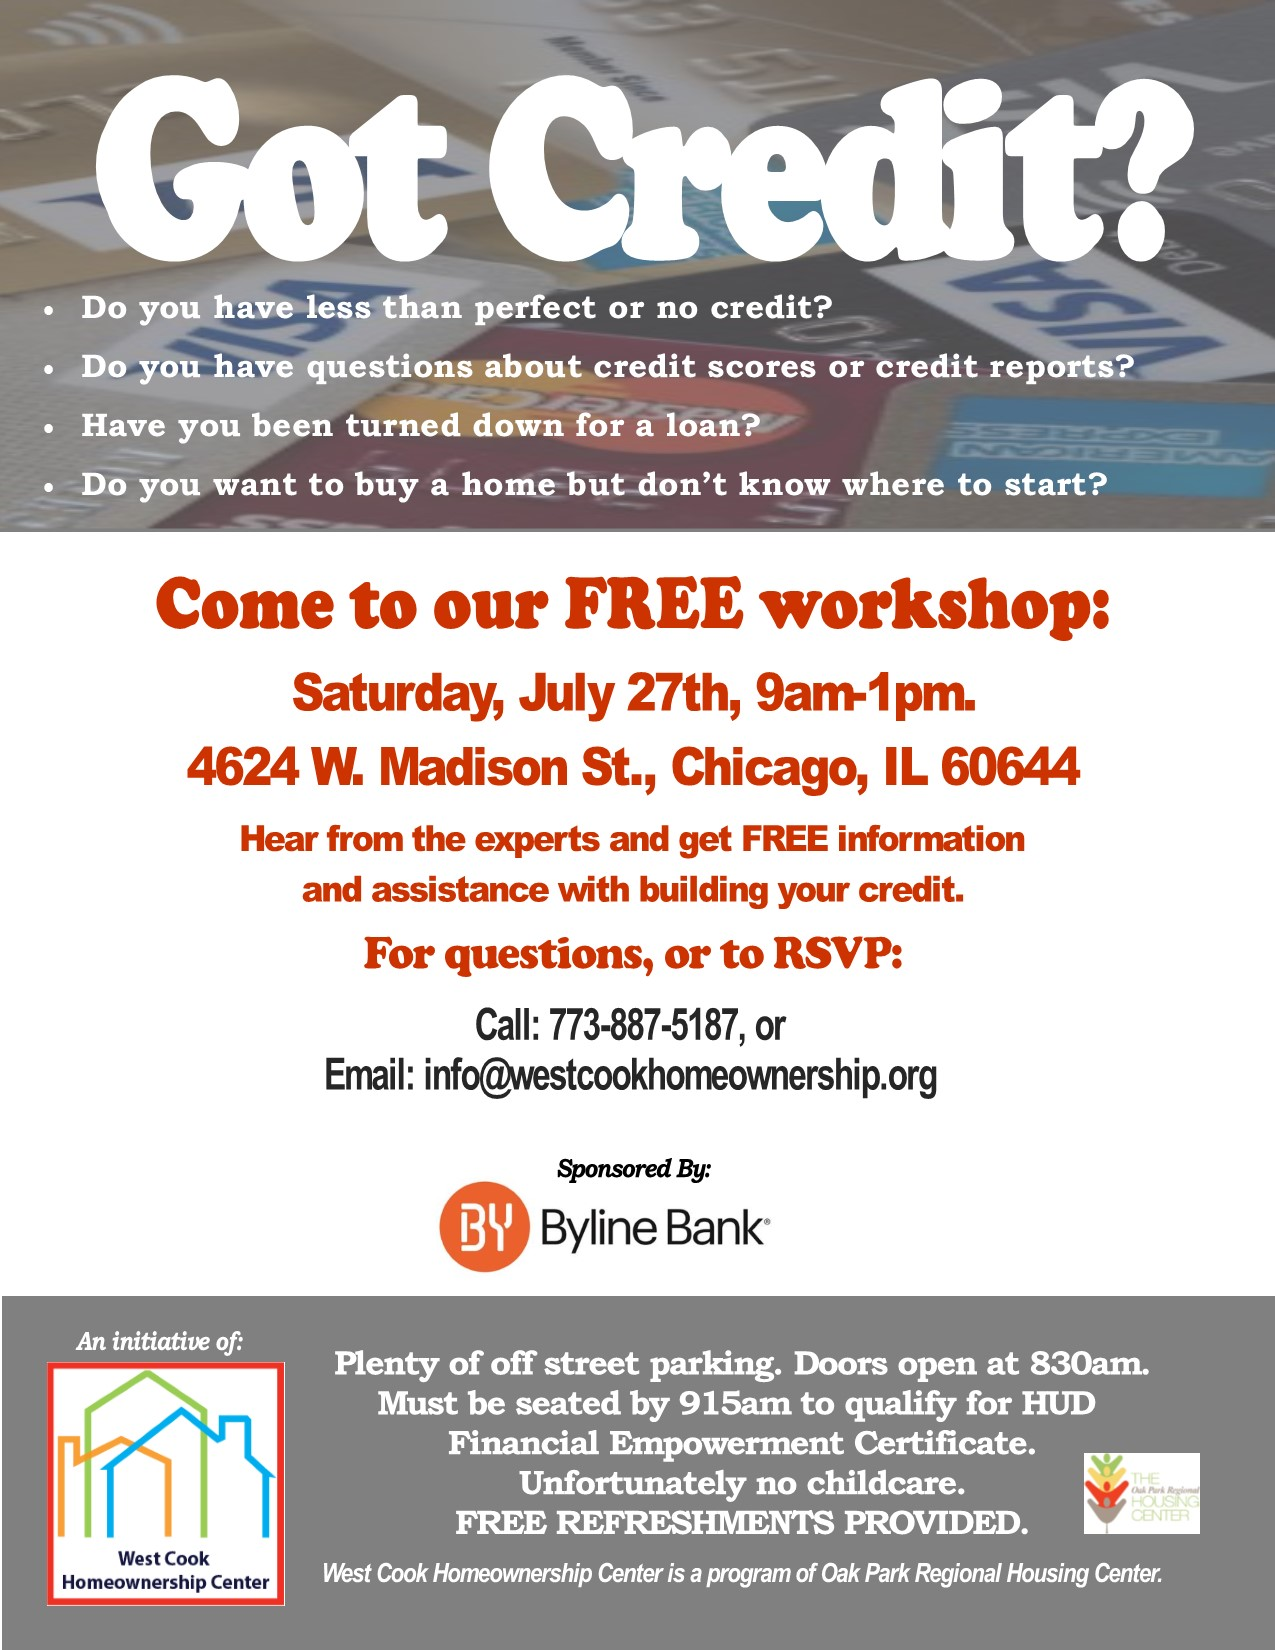 Learn How to Build Your Credit | West Cook Homeownership Center